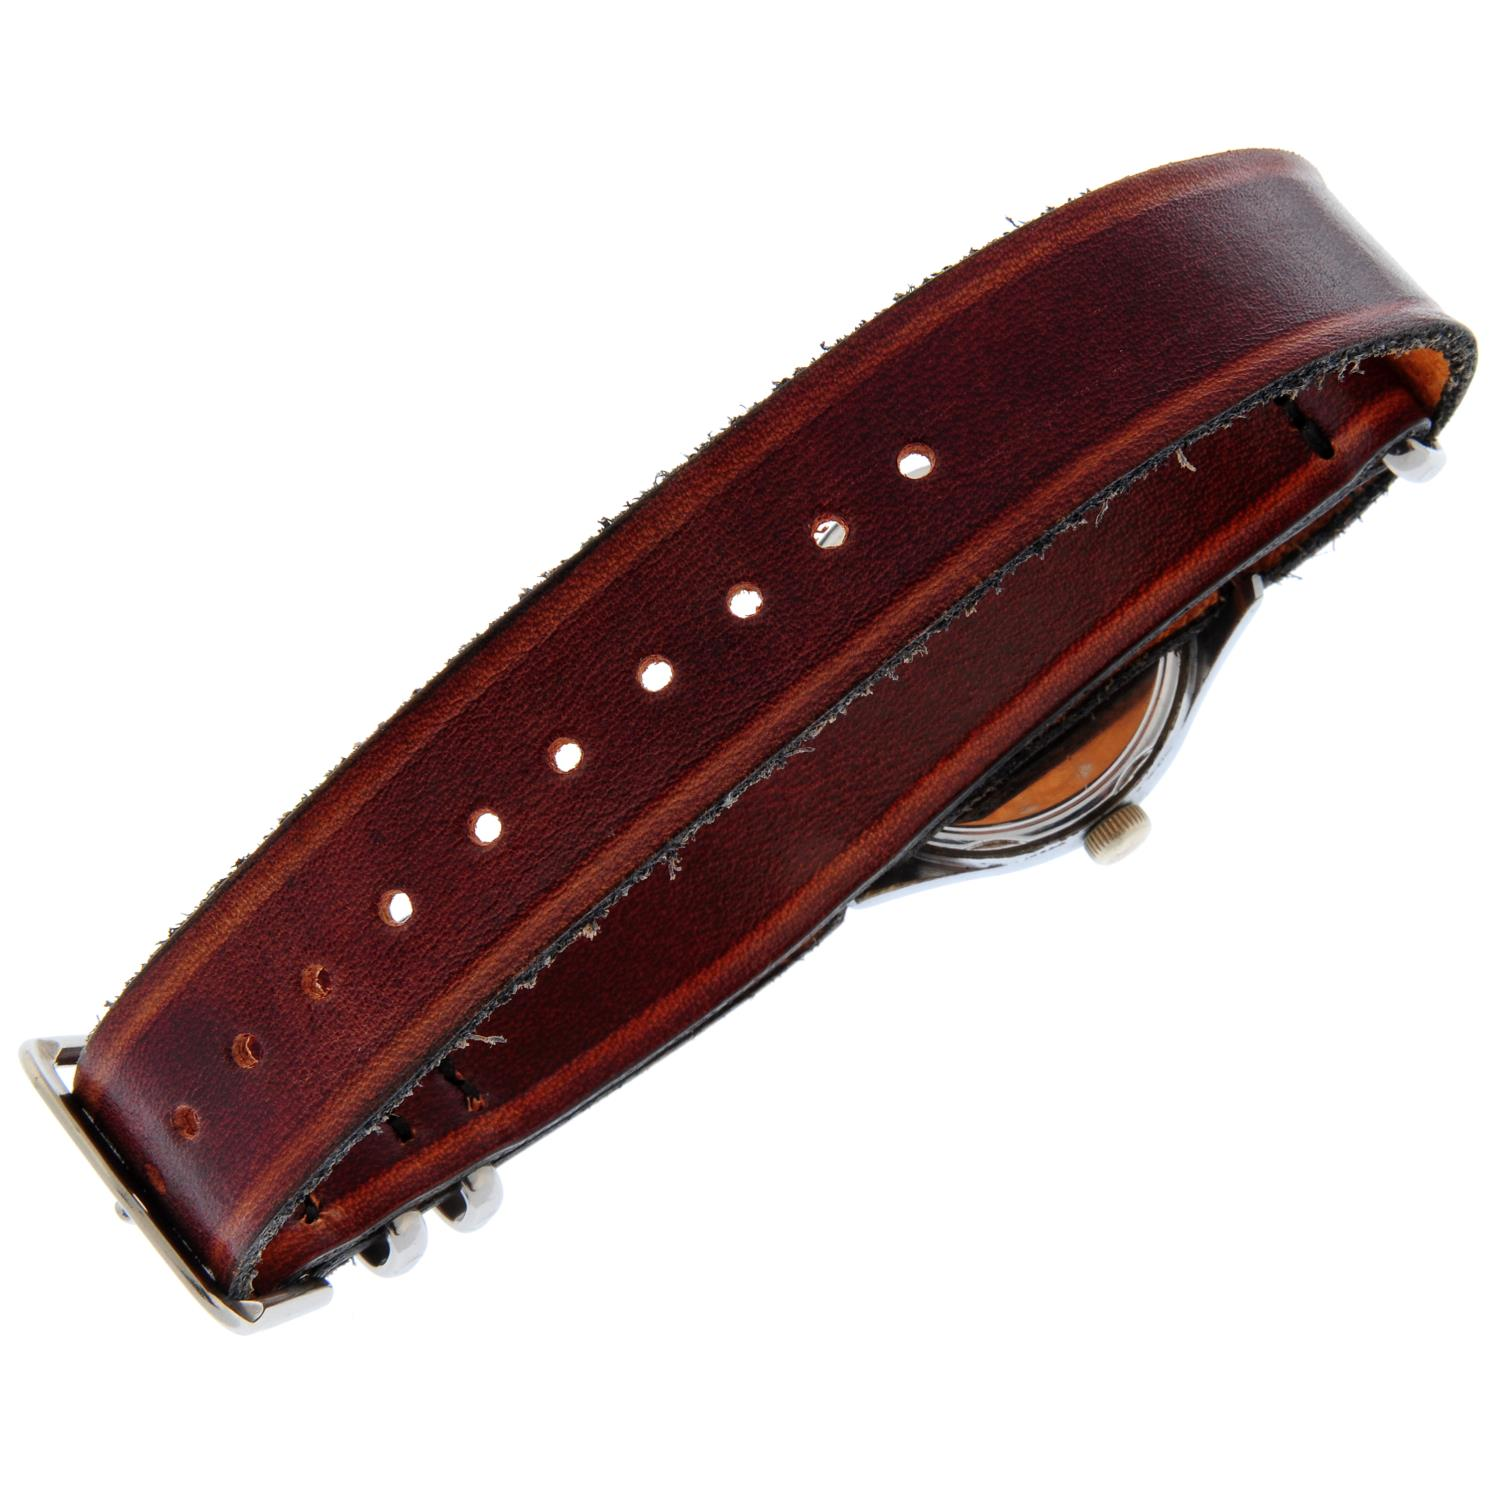 TIMOR - a military issue wrist watch. - Image 2 of 5